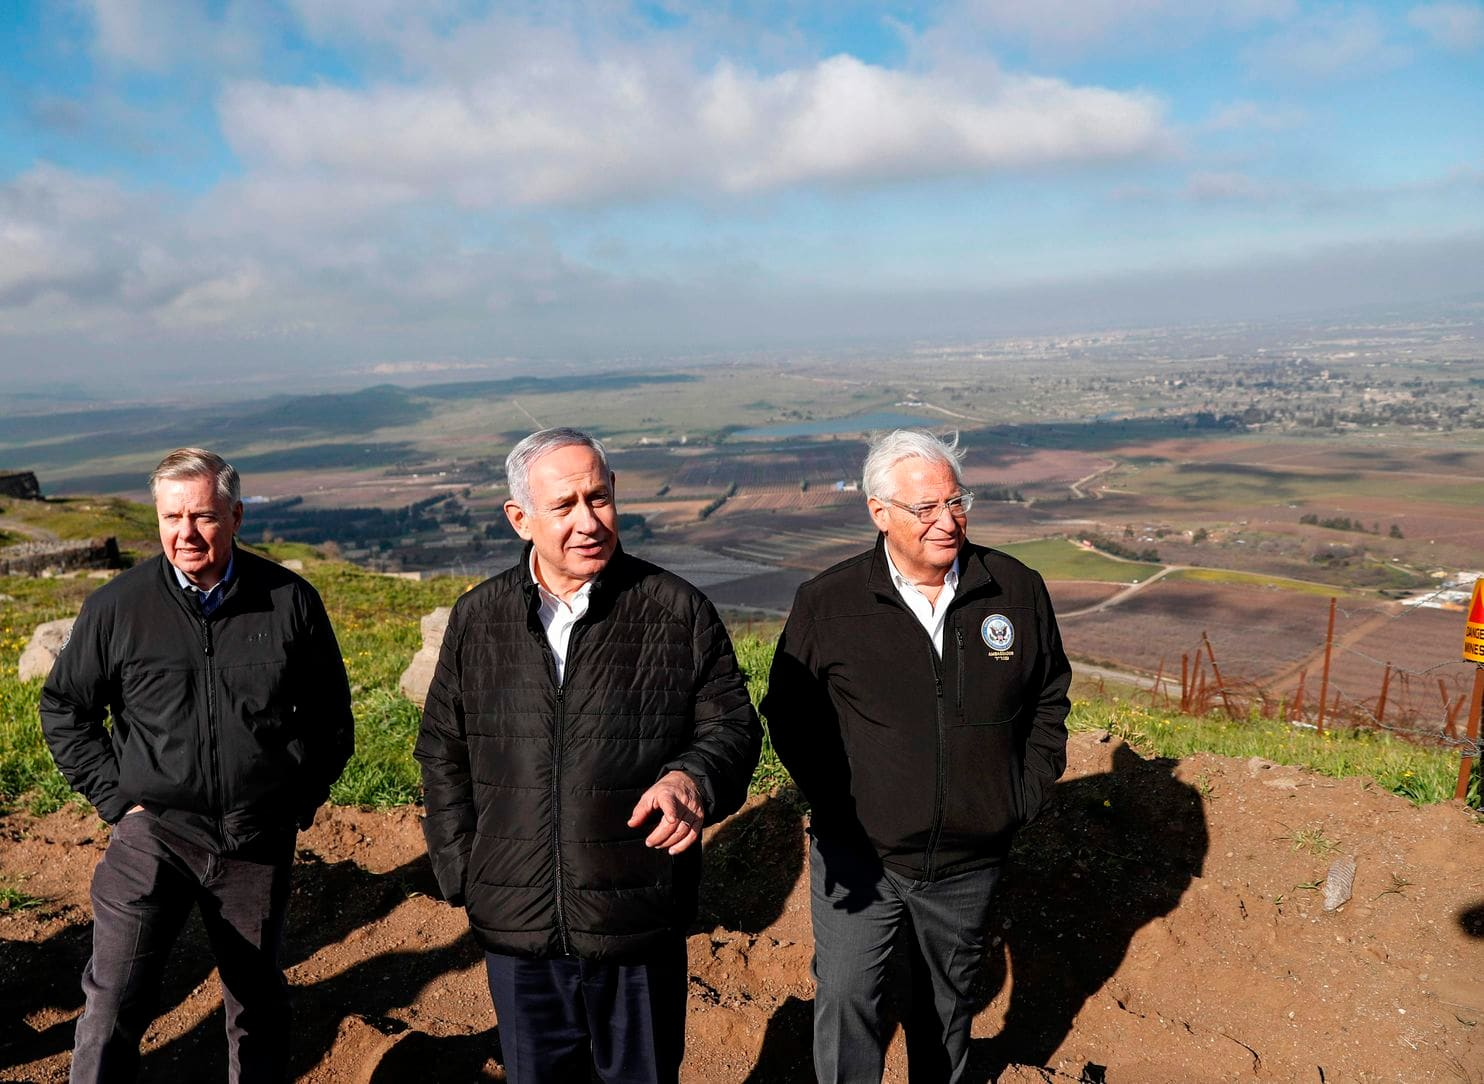 From left, Sen. Lindsey O. Graham (R-S.C.), Israeli Prime Minister Benjamin Netanyahu and the U.S. ambassador to Israel, David Friedman, visit the border between Syria and the Israeli-occupied Golan Heights earlier this month. (Pool photo by Ronen Zvulun/AFP/Getty Images)